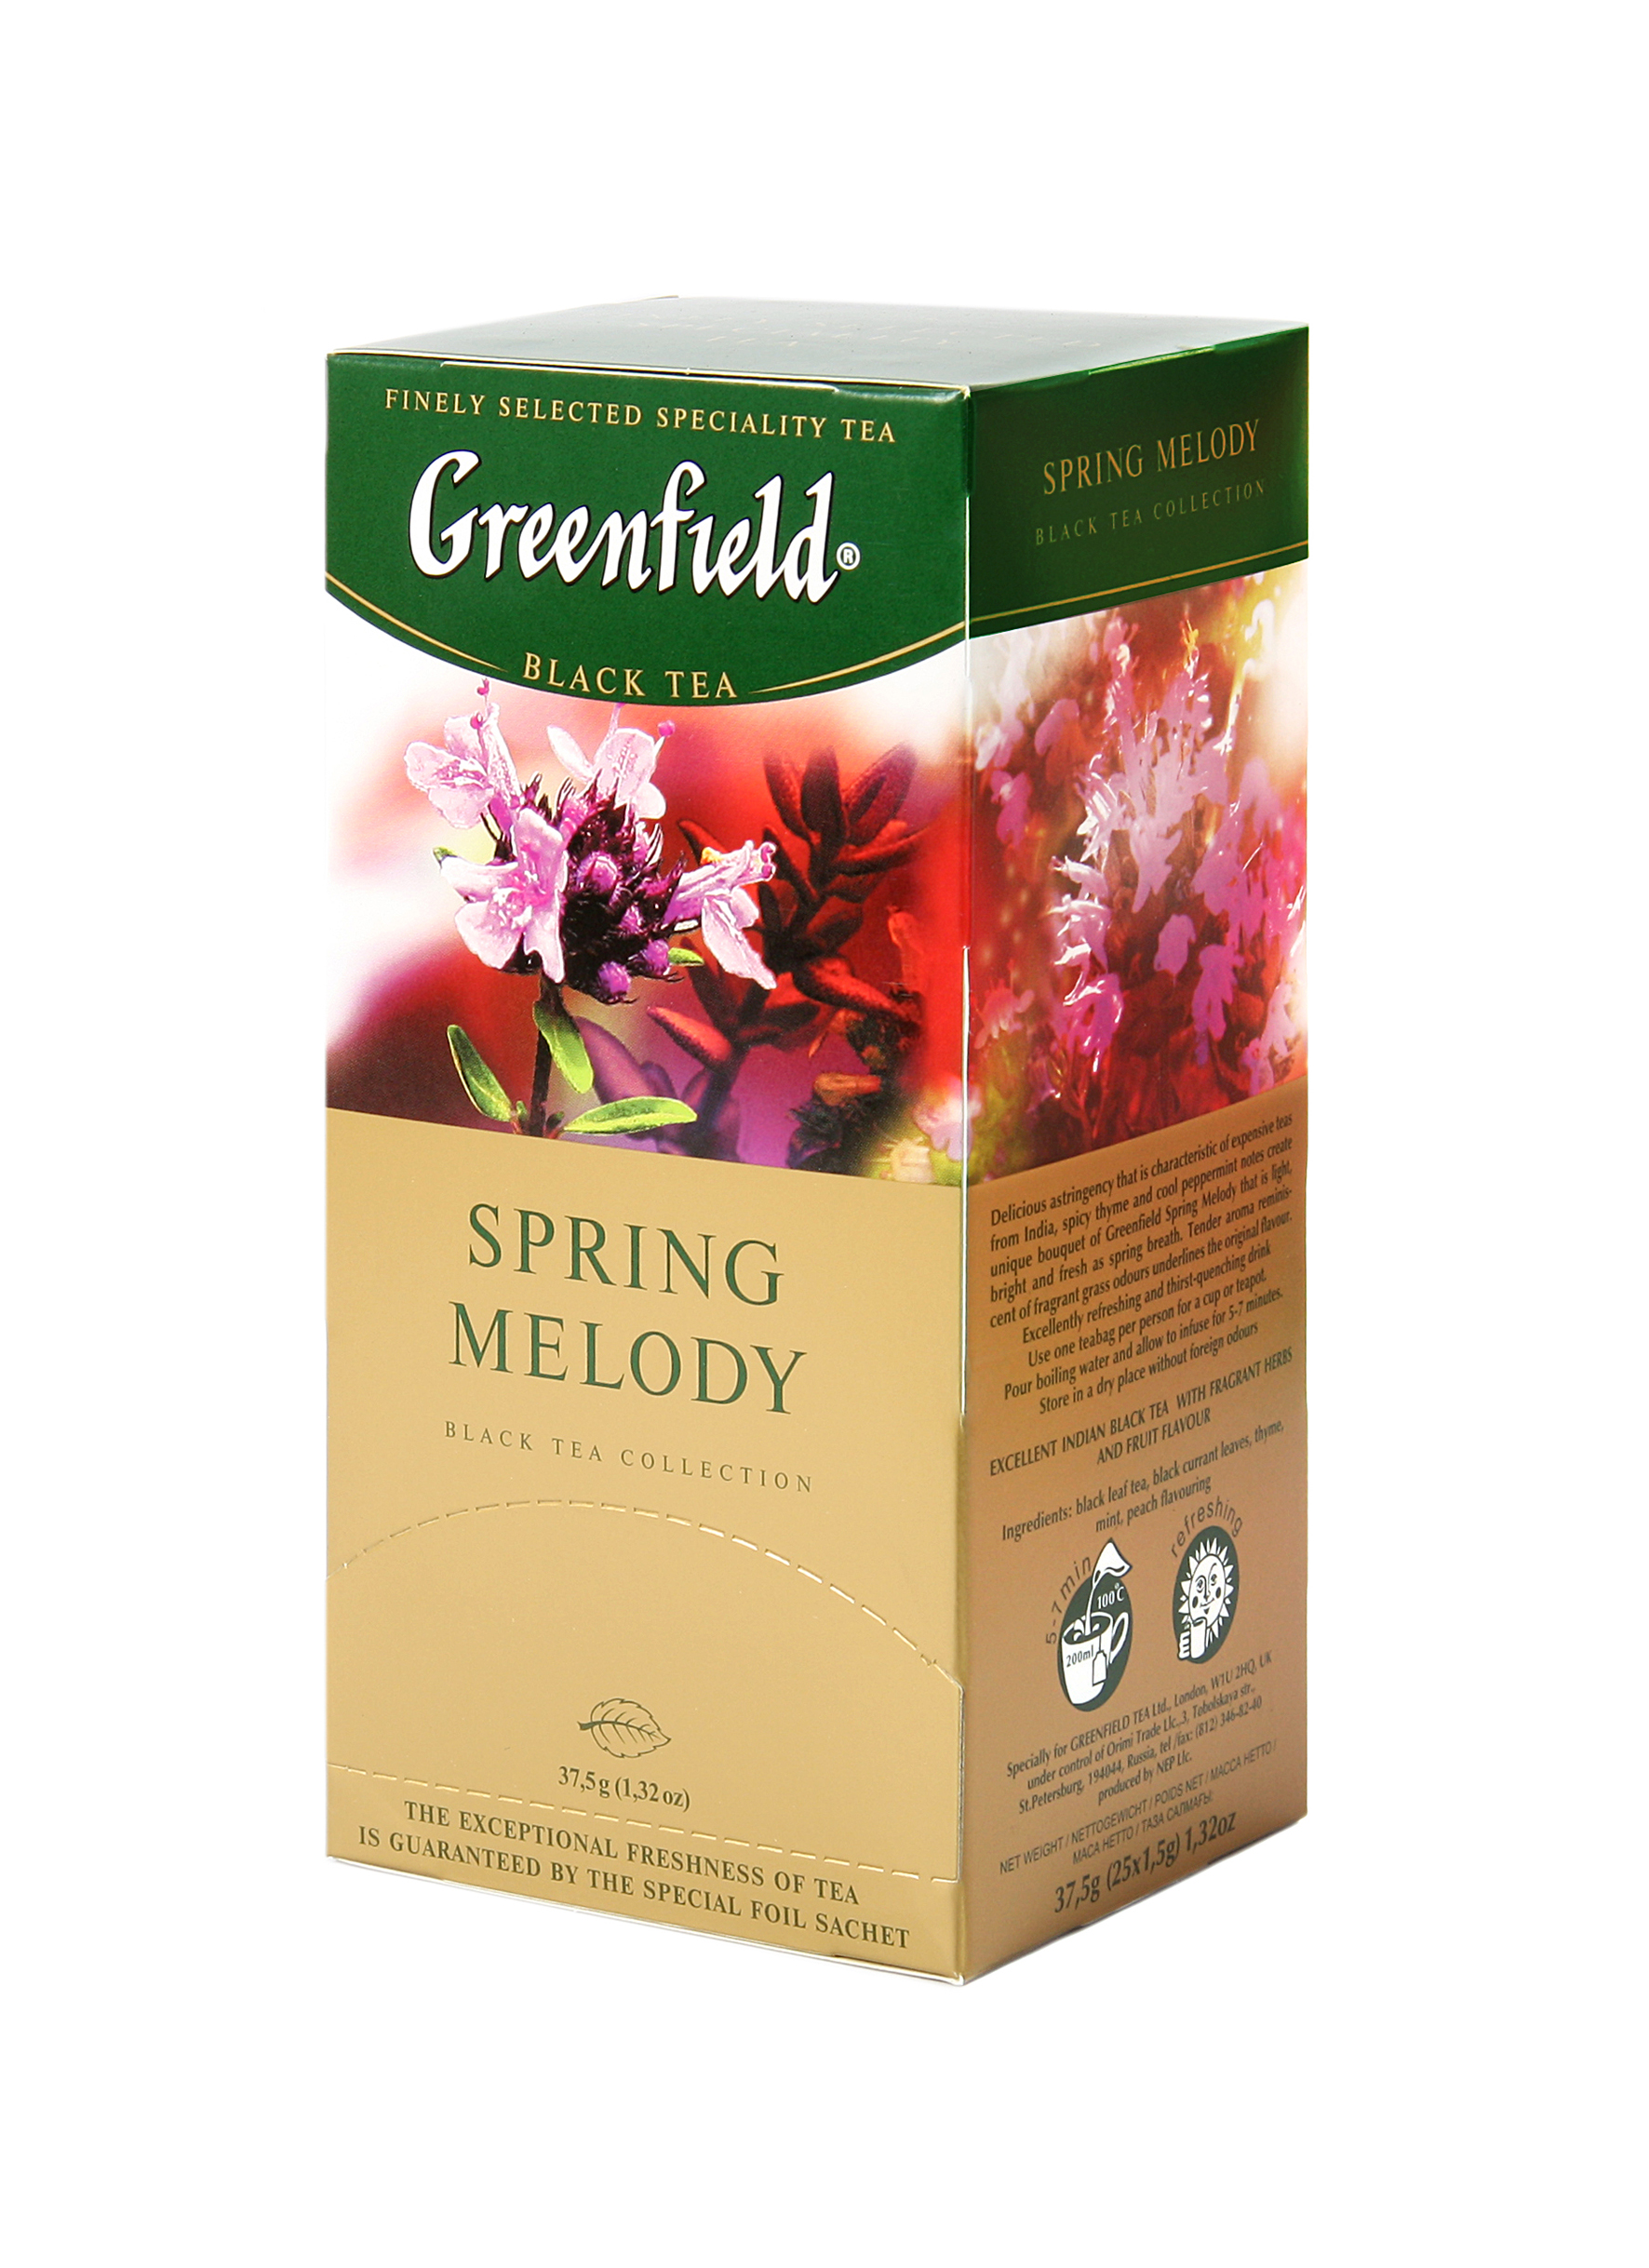 Spring melody Greenfield